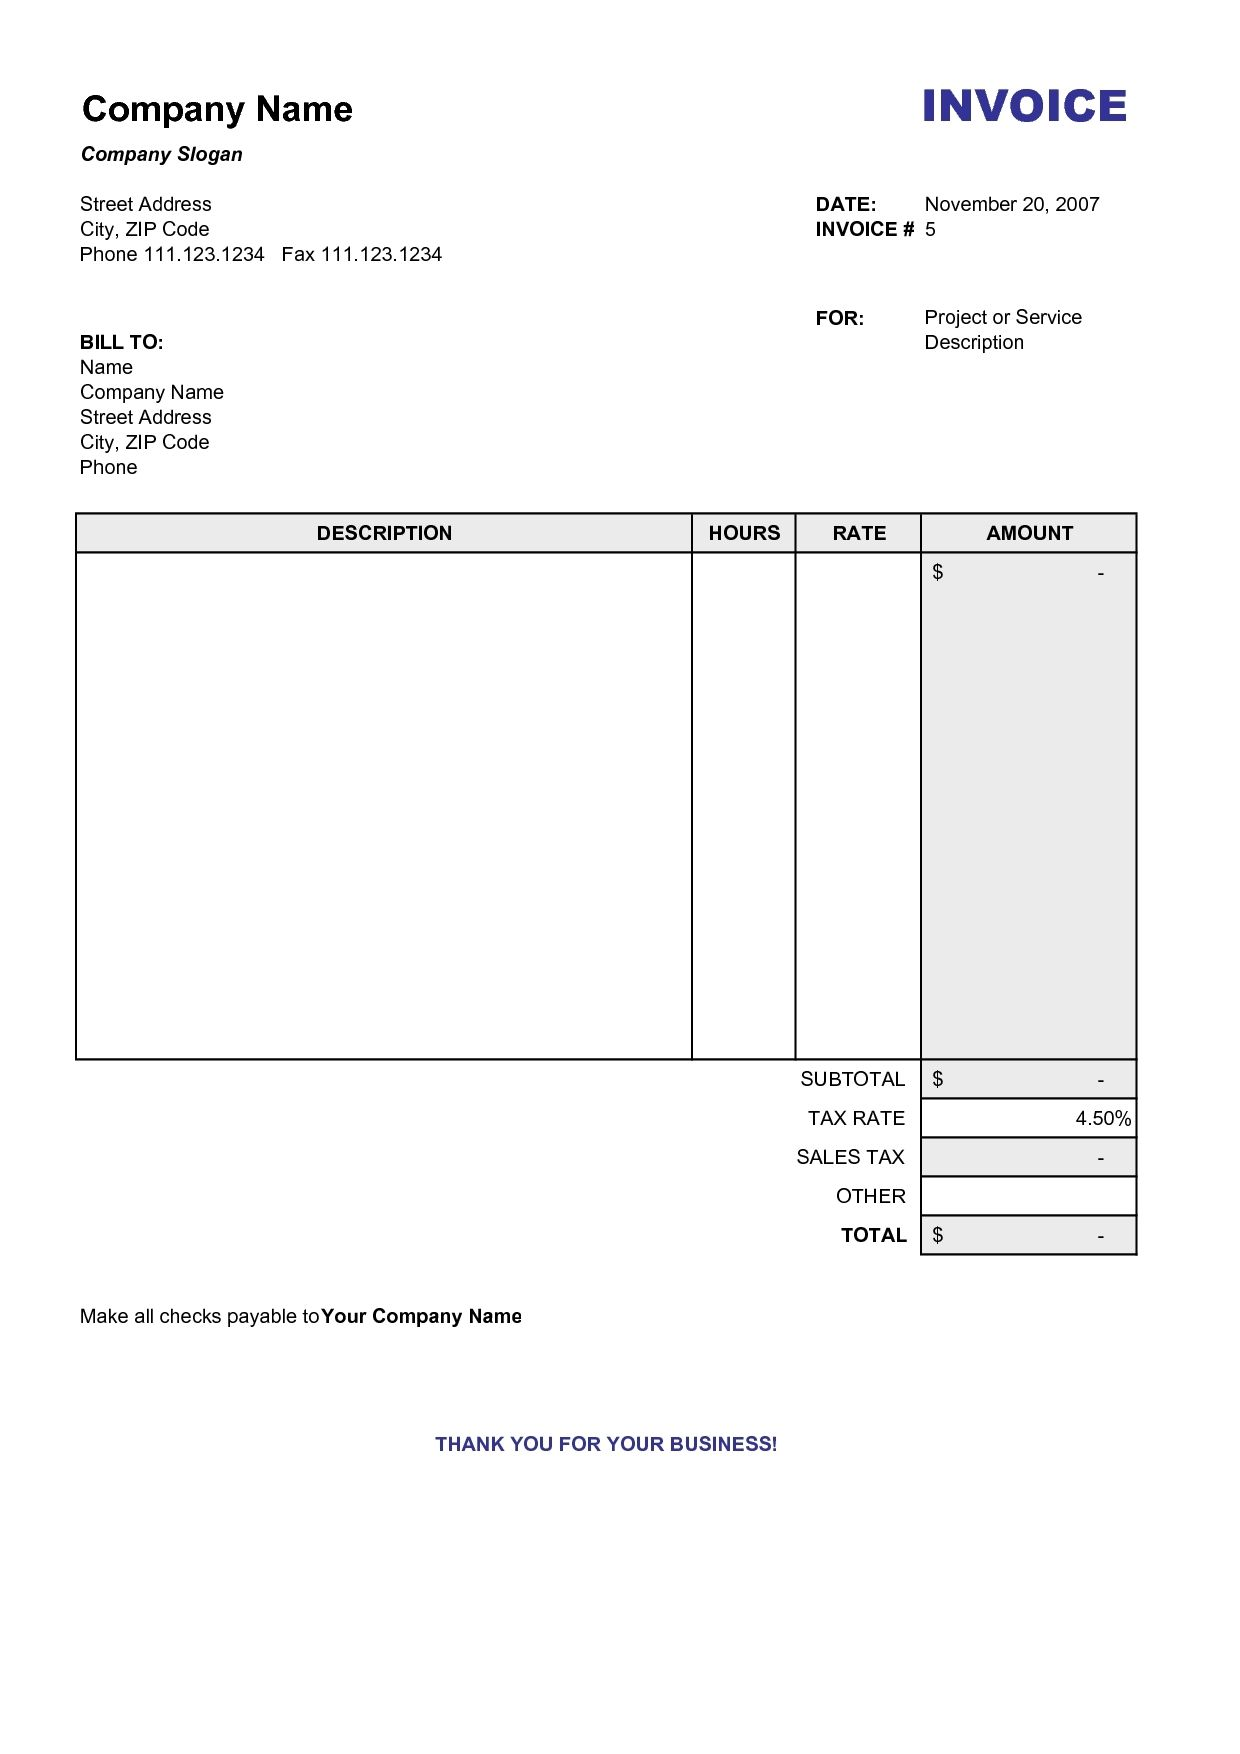 Copy Of A Blank Invoice Invoice Template Free Copy Of Blank - Free invoice template : create blank invoice